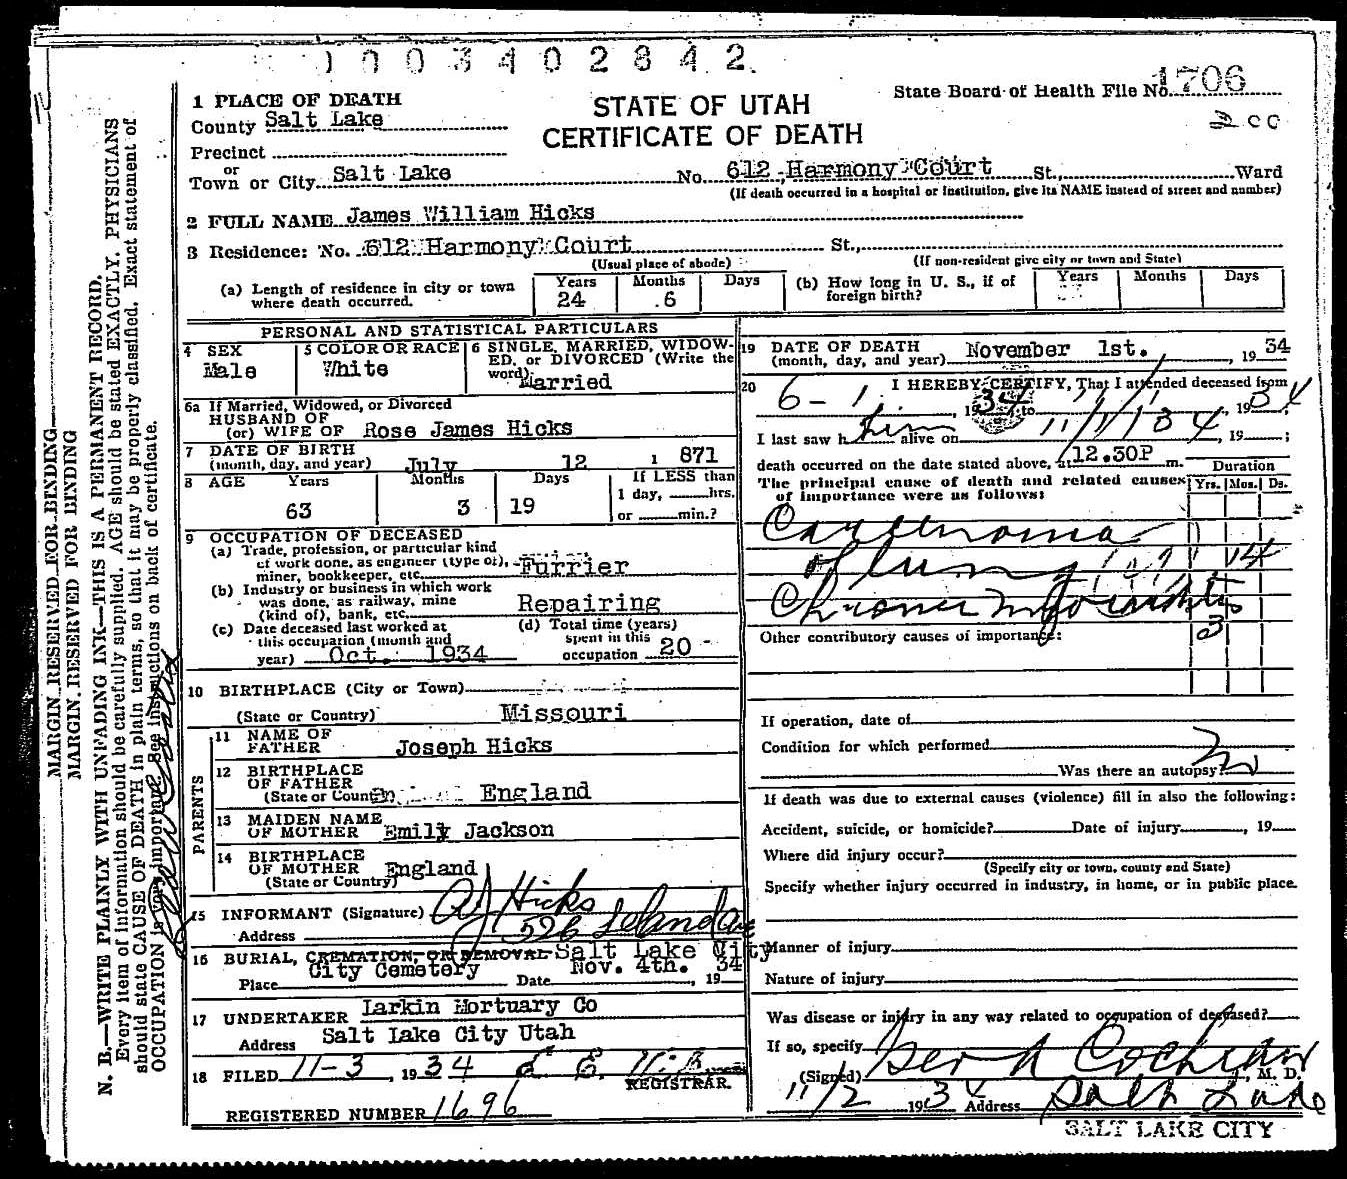 Death records death certificate james william hicks 1934 1betcityfo Gallery